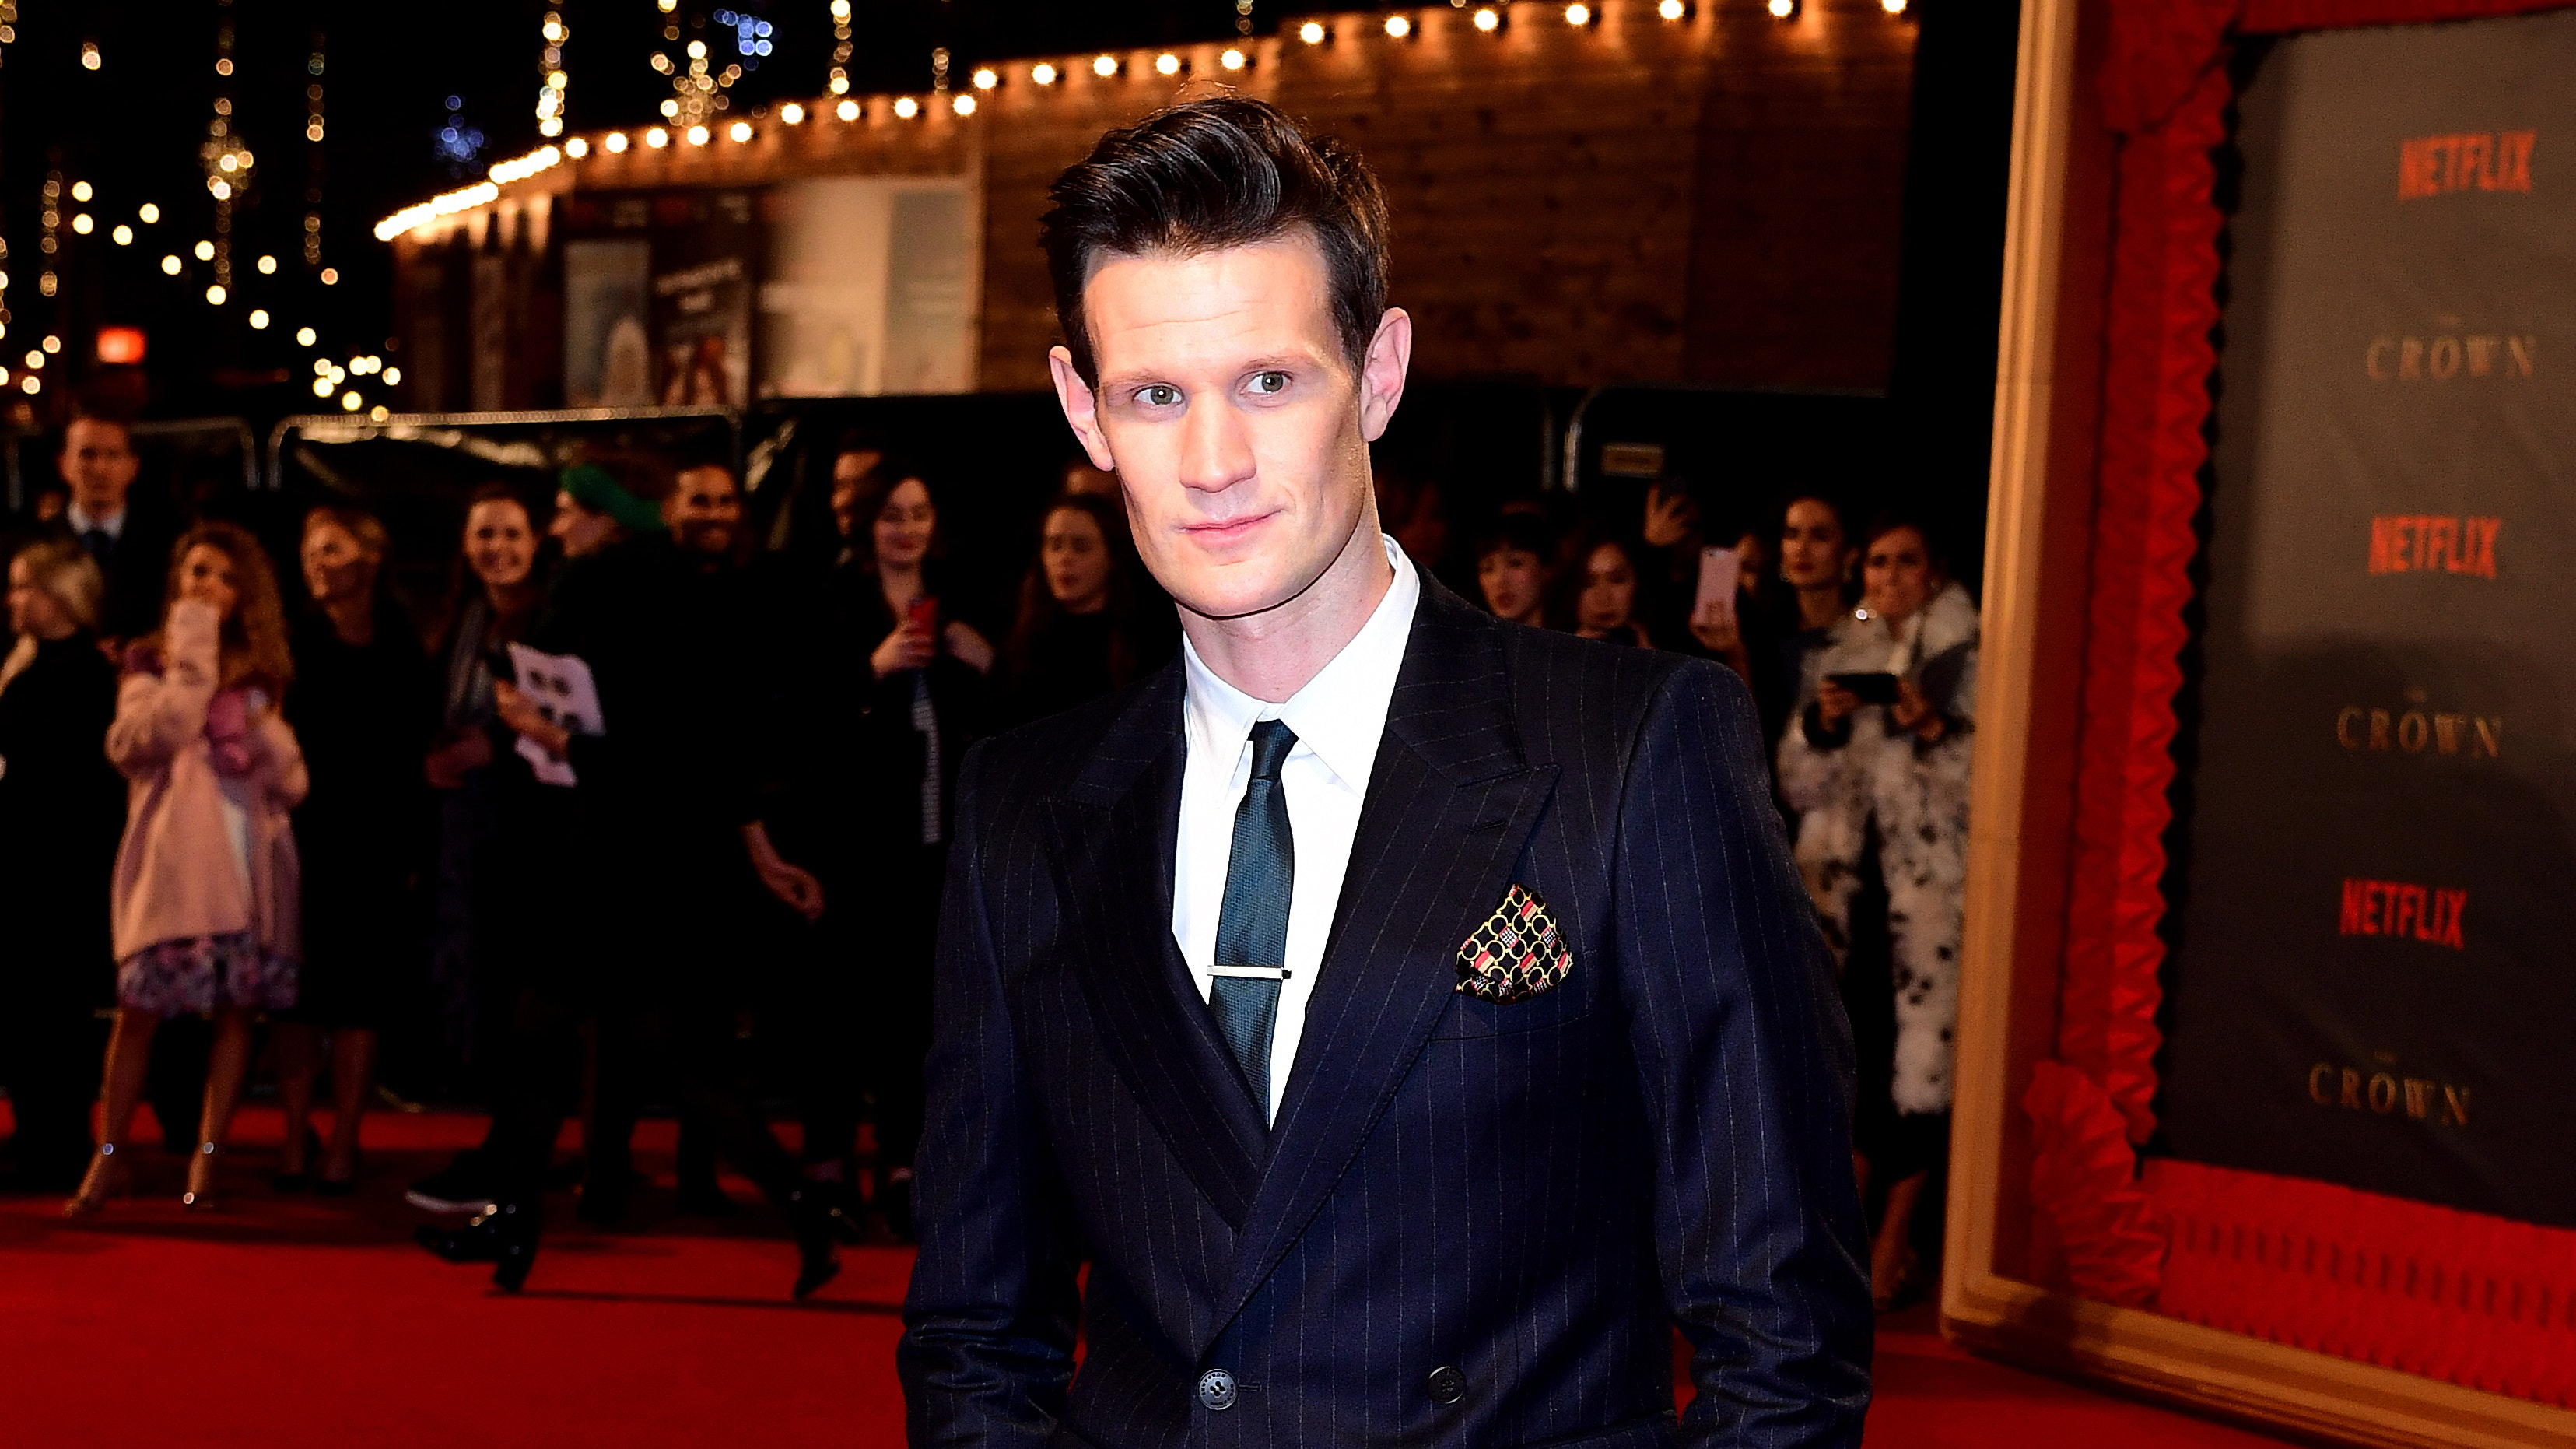 Matt Smith to play Charles Manson in new film 'Charlie Says'""